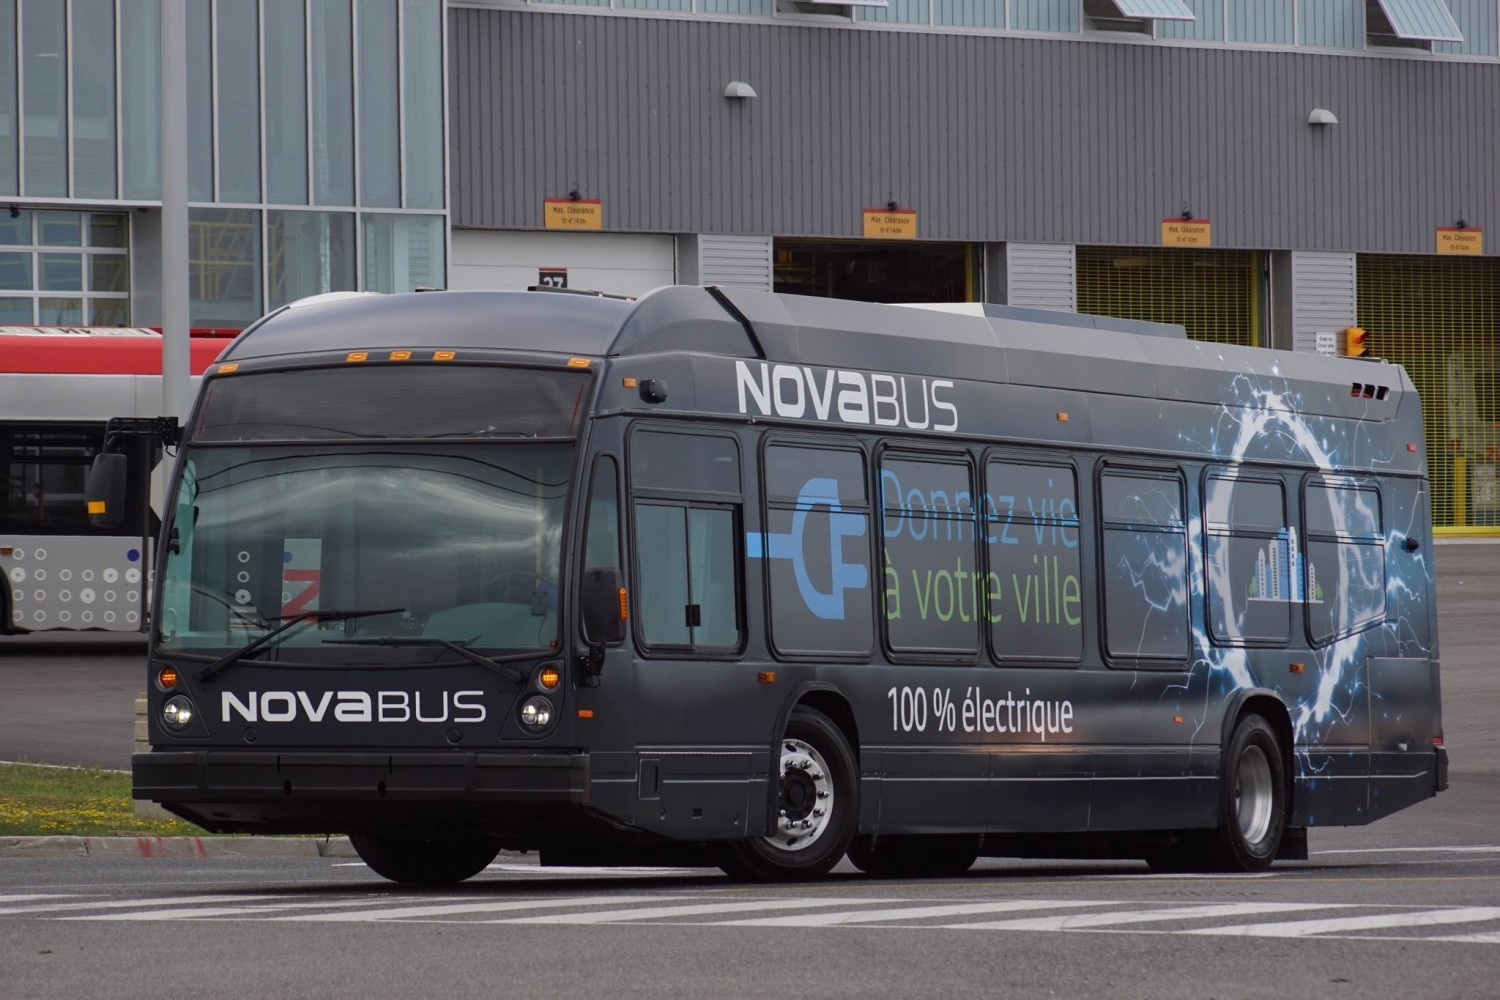 Brown's claim of electrified transit facility latest in a growing list of empty promises